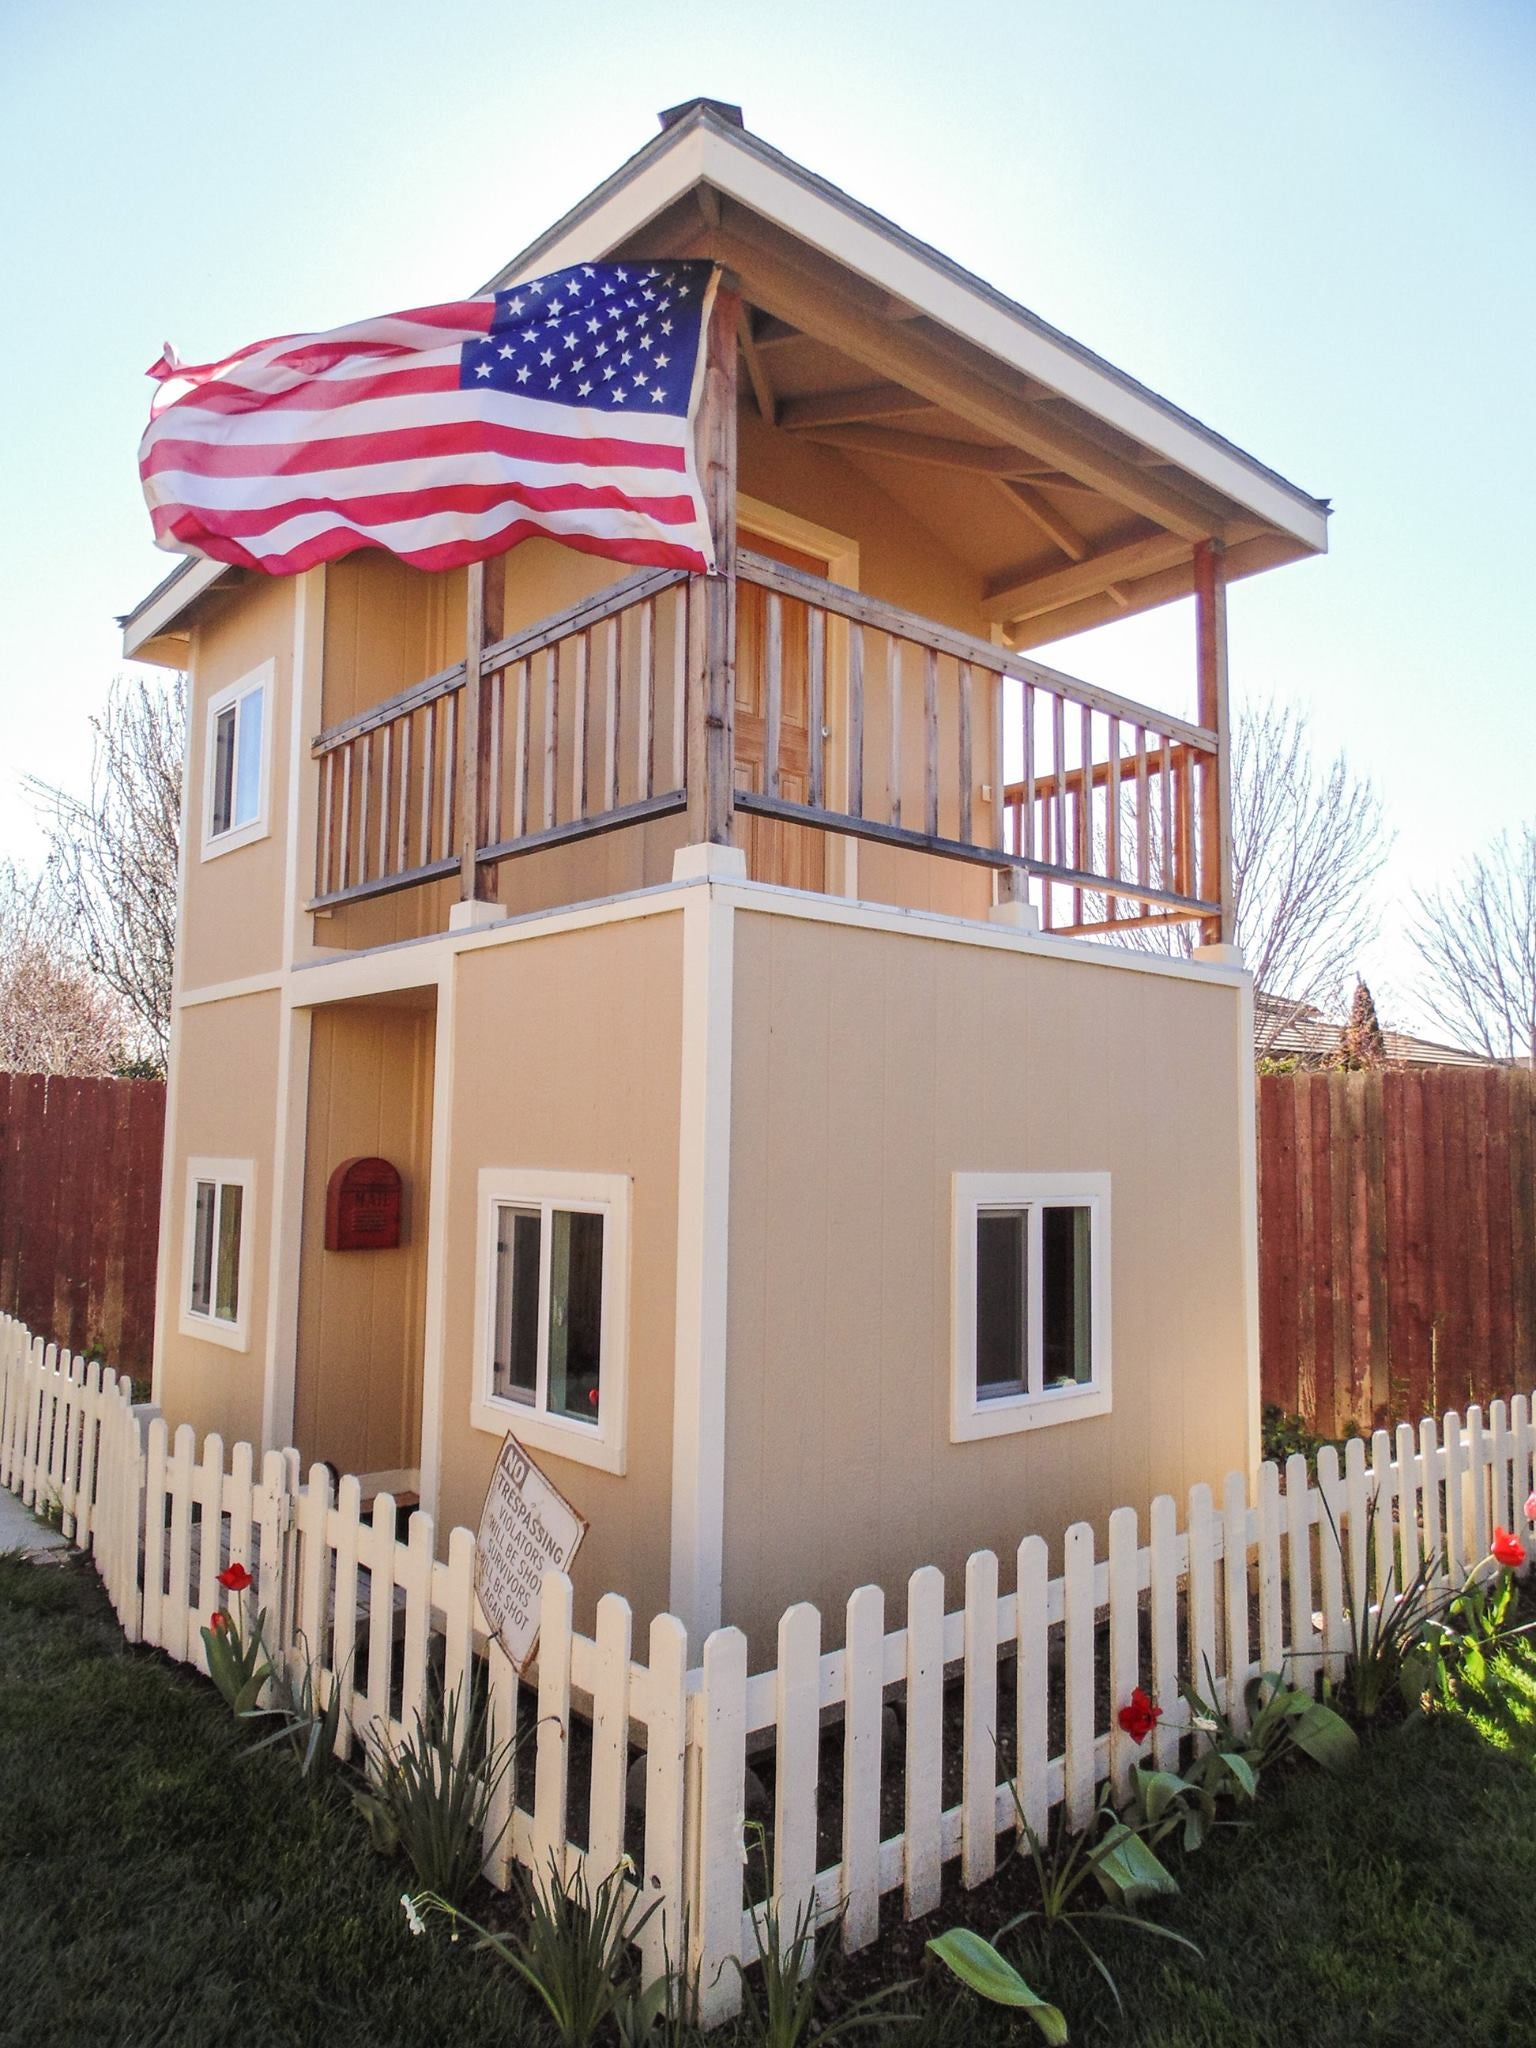 Two Story Playhouse With Balcony - Instructables